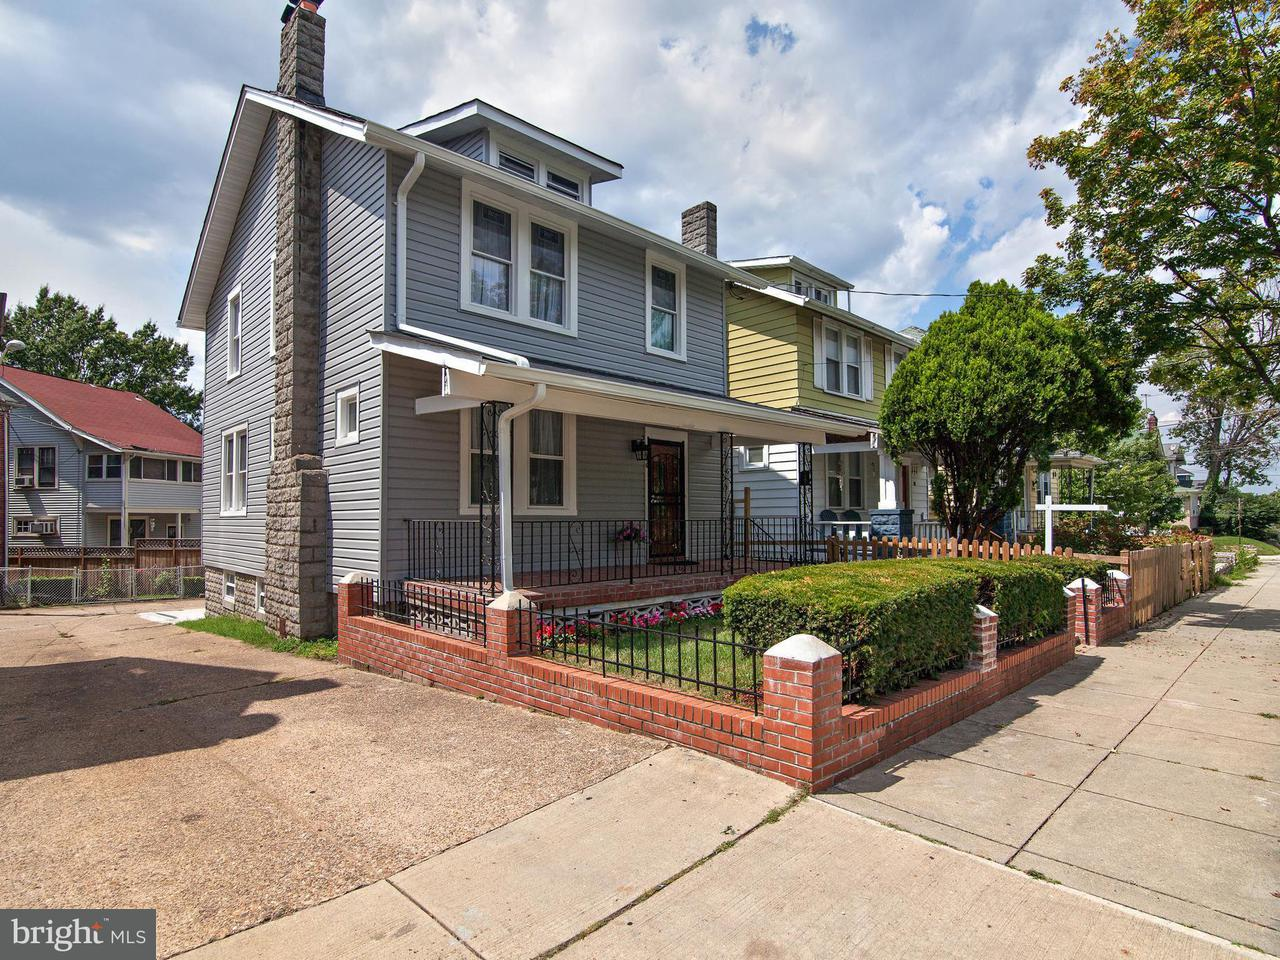 Single Family Home for Sale at 3416 24TH ST NE 3416 24TH ST NE Washington, District Of Columbia 20018 United States